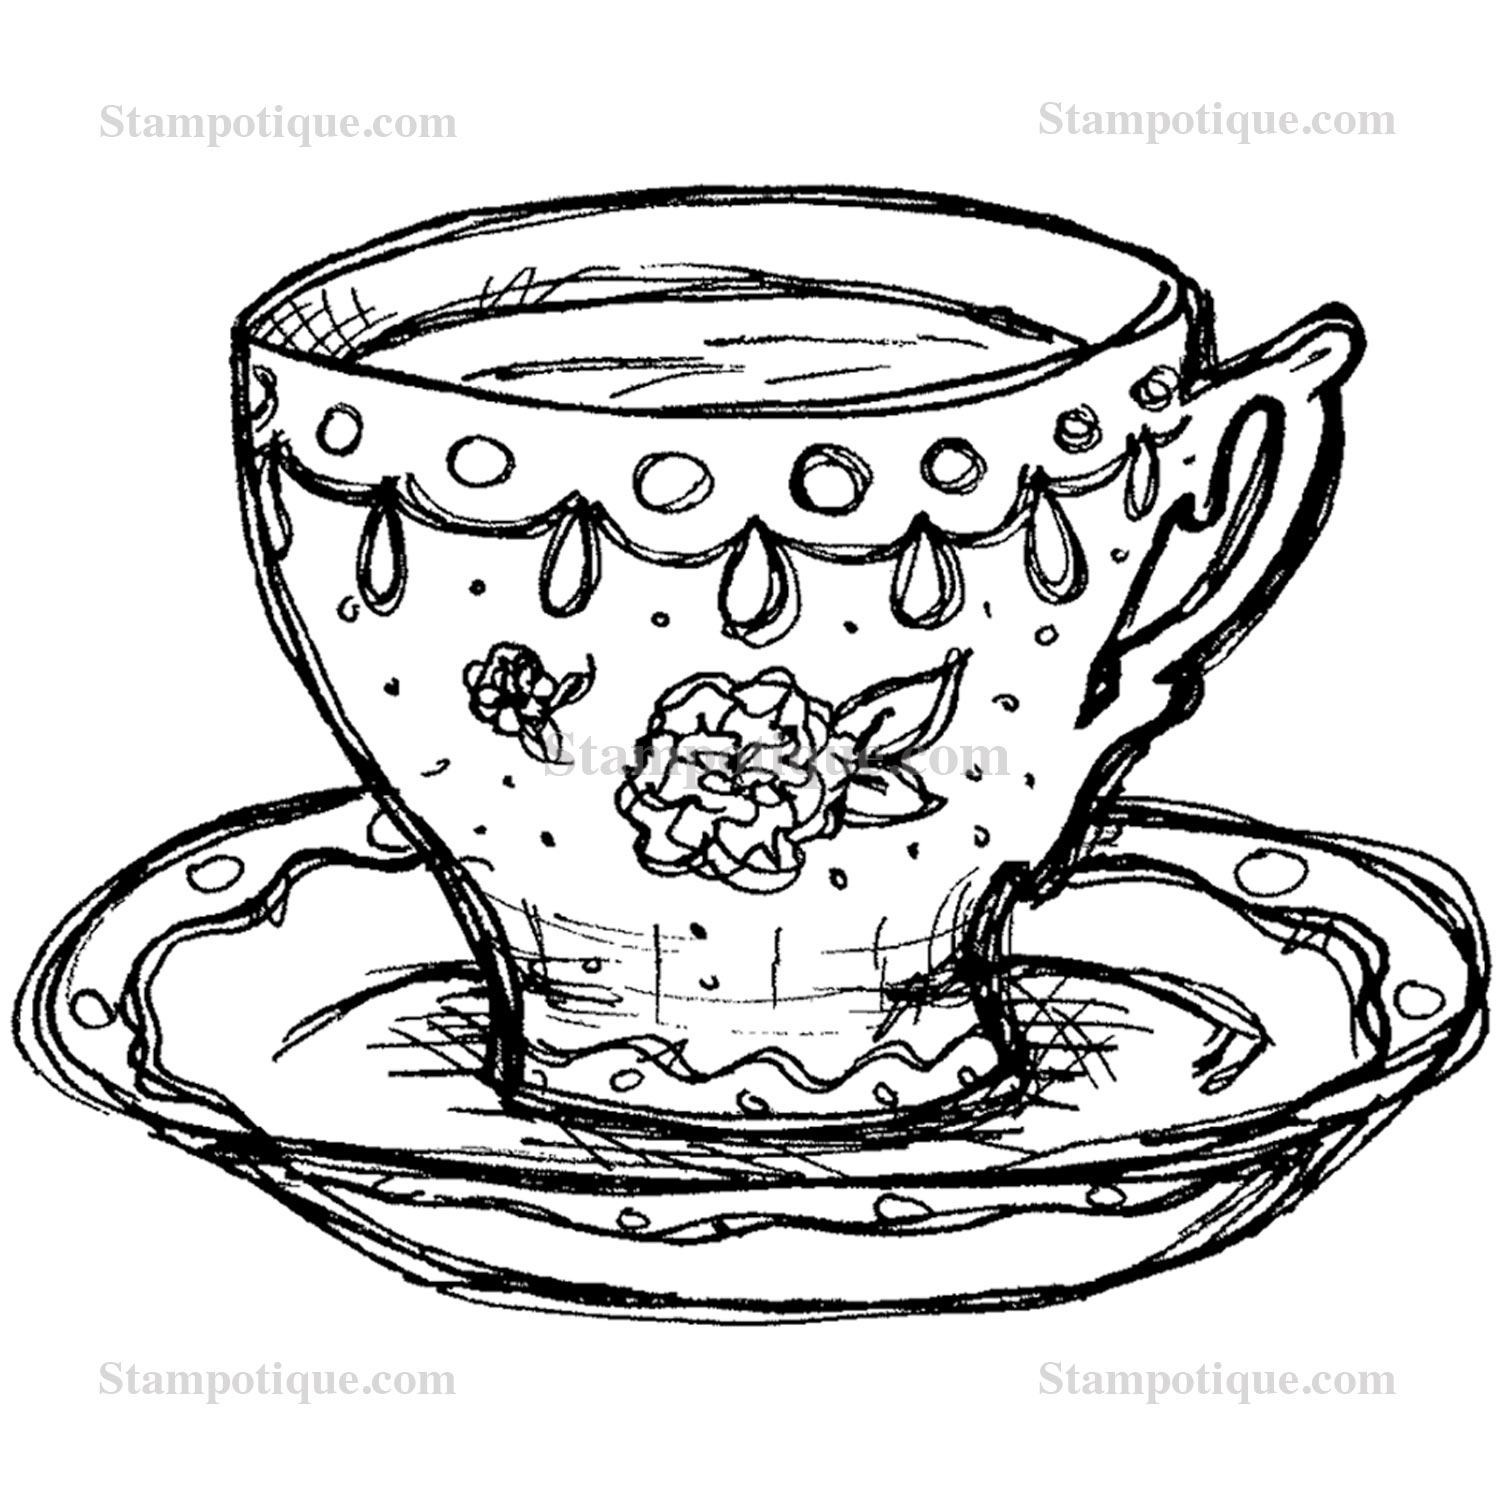 Teacup Drawing